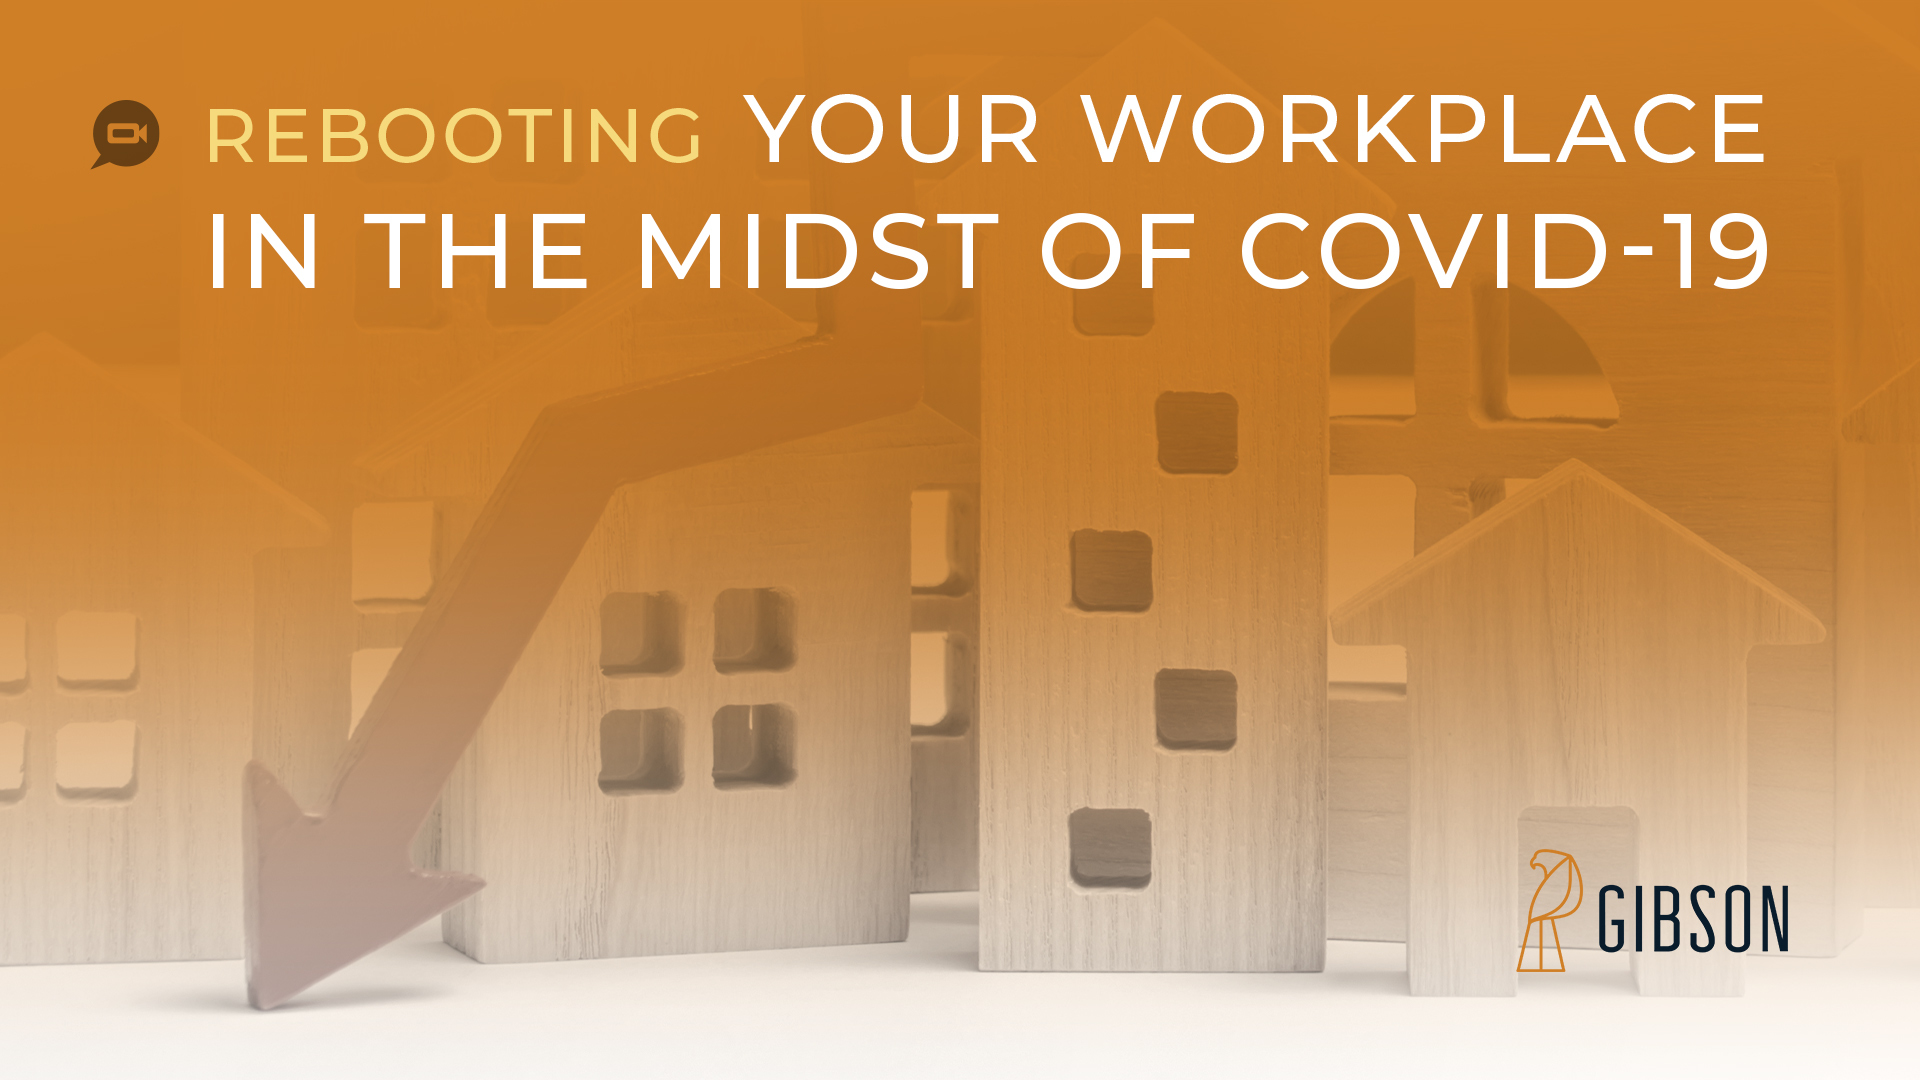 Rebooting Your Workplace in the Midst of COVID-19